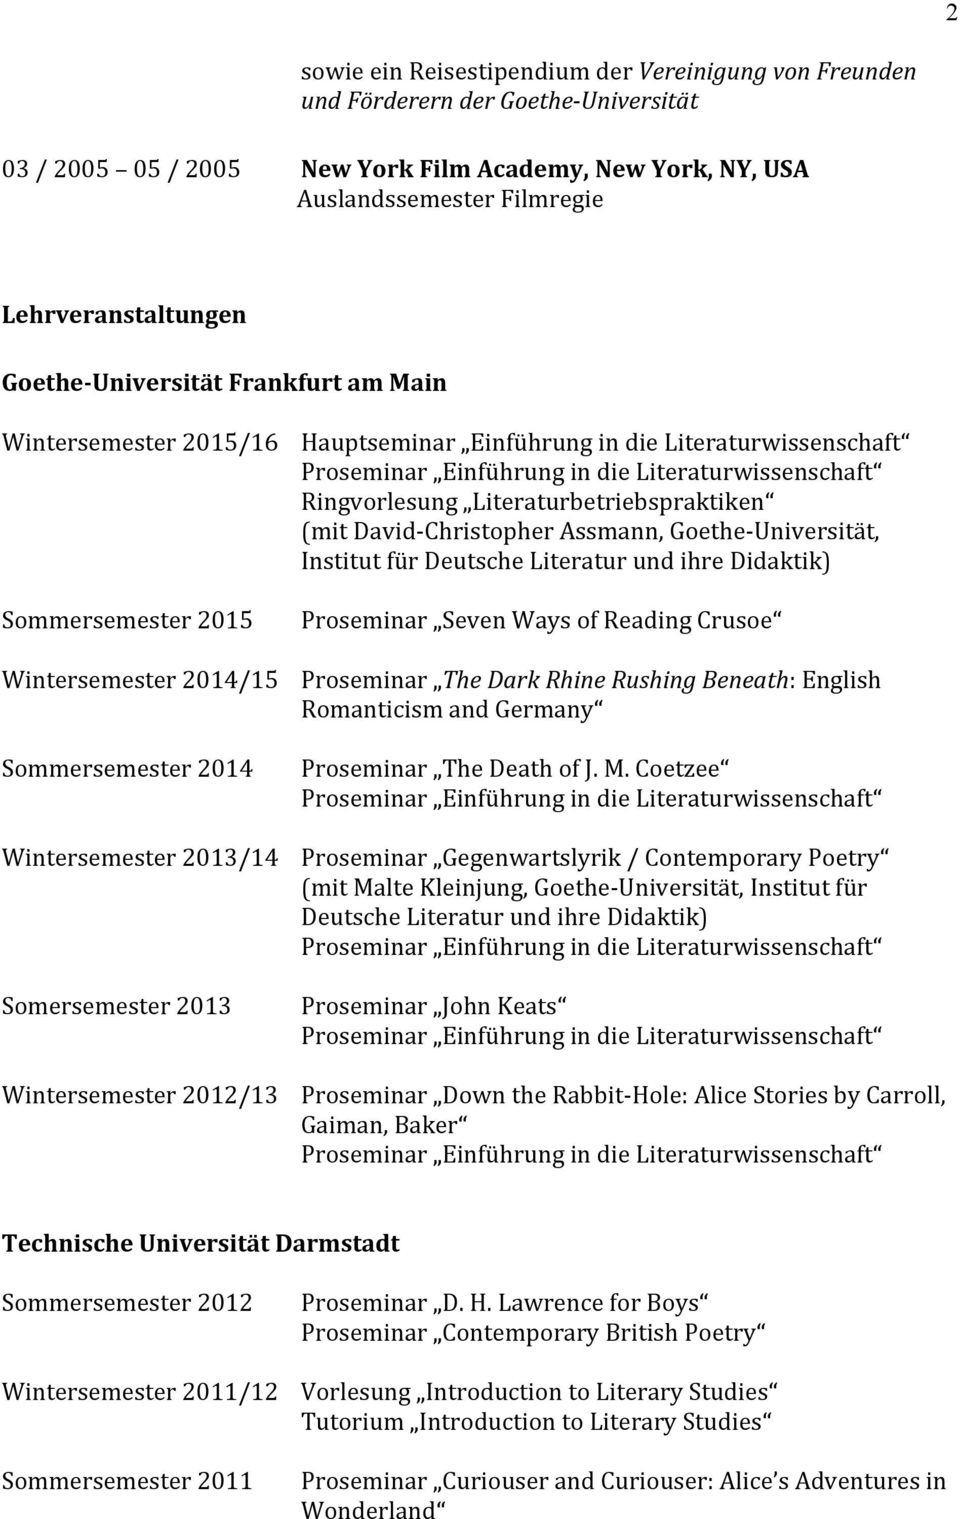 für Deutsche Literatur und ihre Didaktik) Sommersemester 2015 Proseminar Seven Ways of Reading Crusoe Wintersemester 2014/15 Proseminar The Dark Rhine Rushing Beneath: English Romanticism and Germany